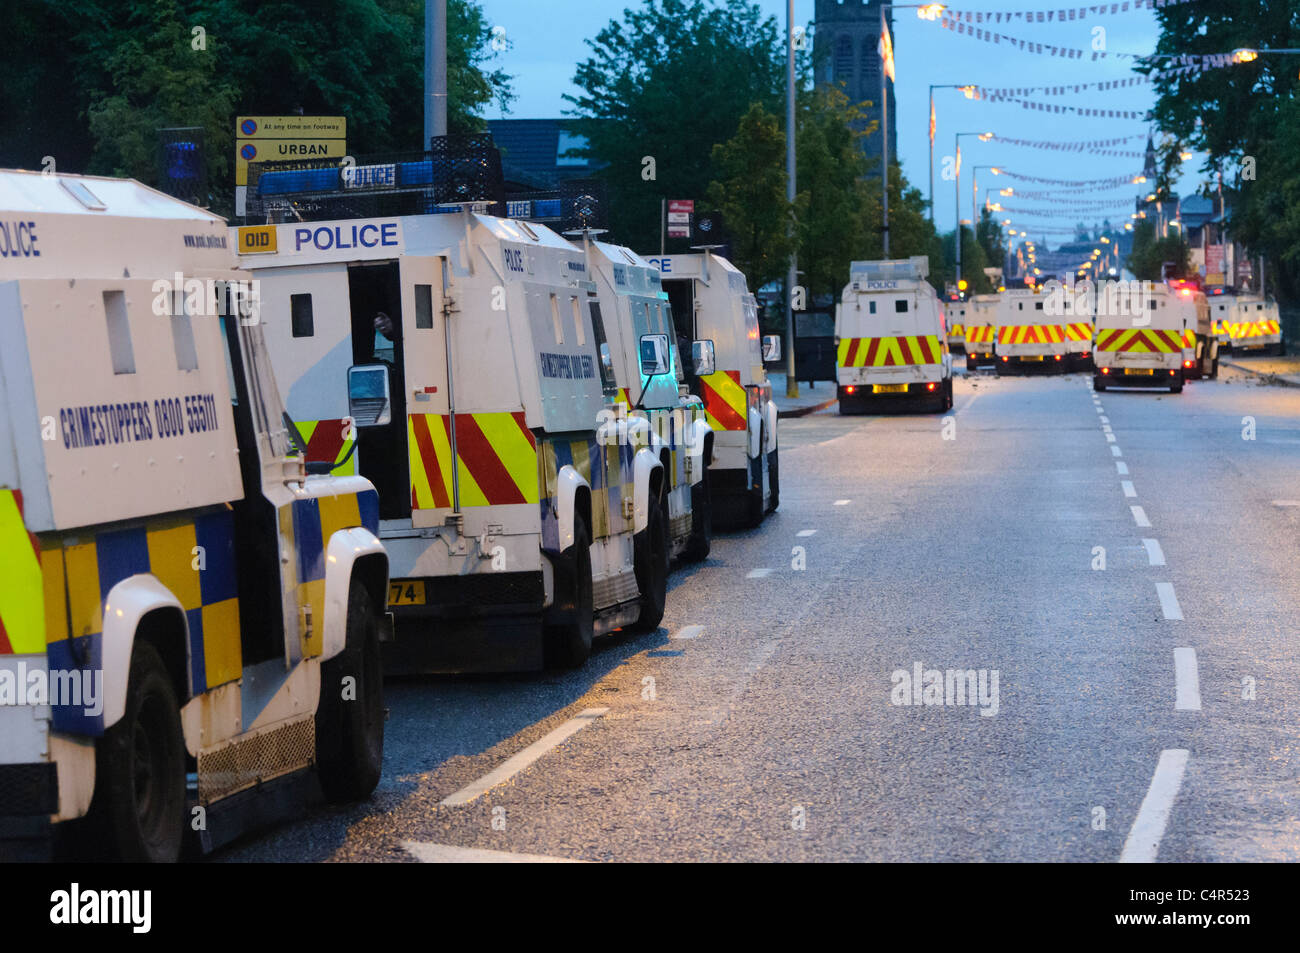 Dozens of PSNI armoured Landrovers are used to control a mob of rioters  BELFAST 21/06/2011 - Stock Image